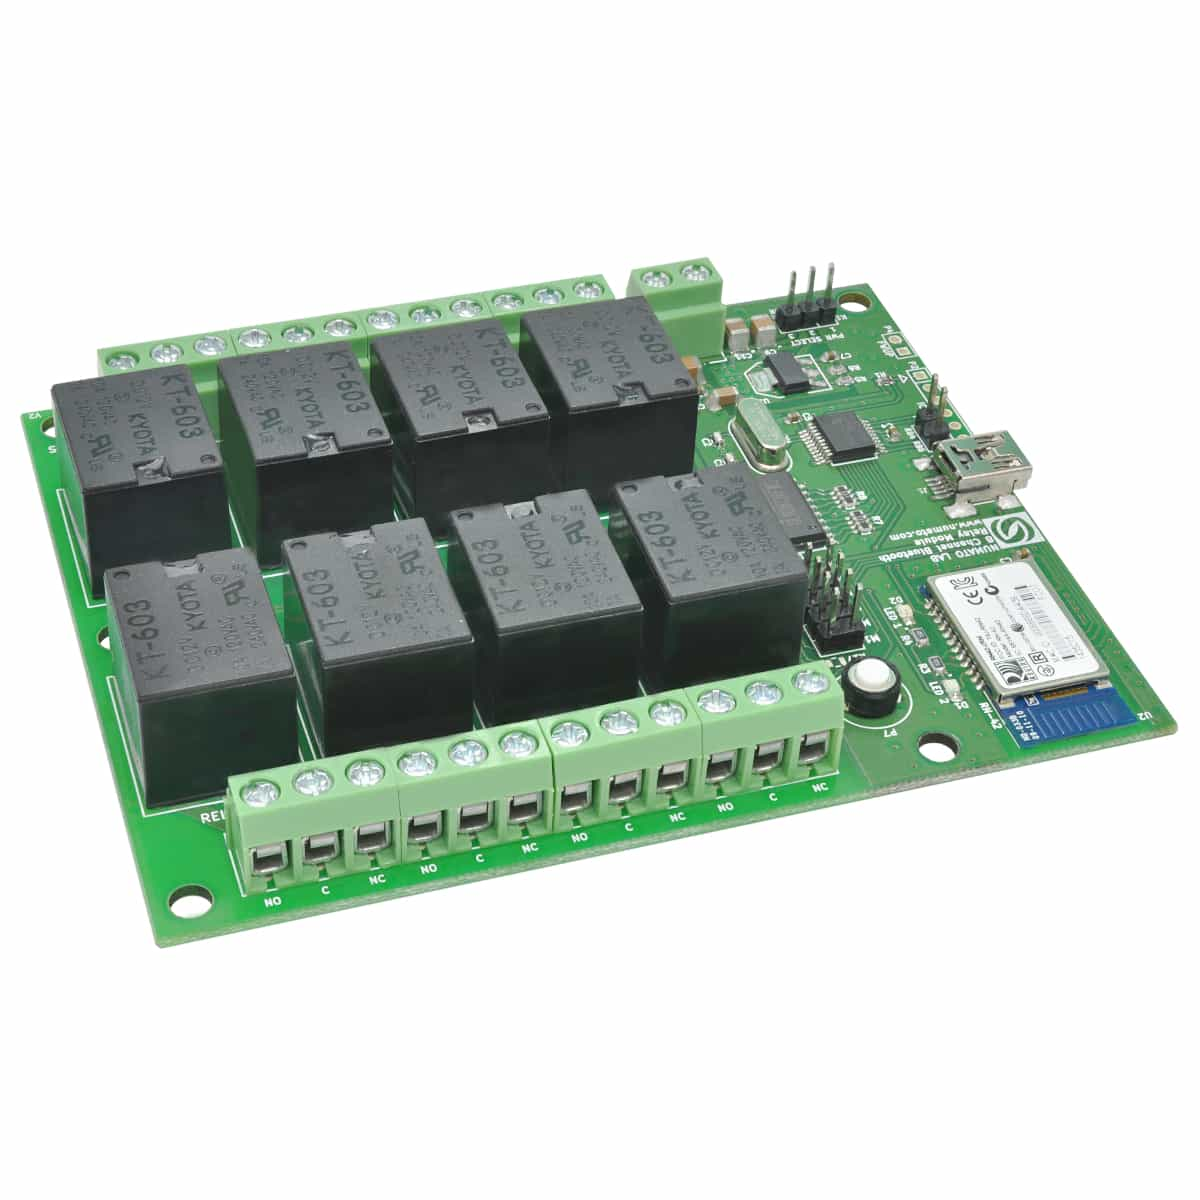 8 Channel Bluetooth Relay Module With Gpio Numato Lab Switch Over Ethernet